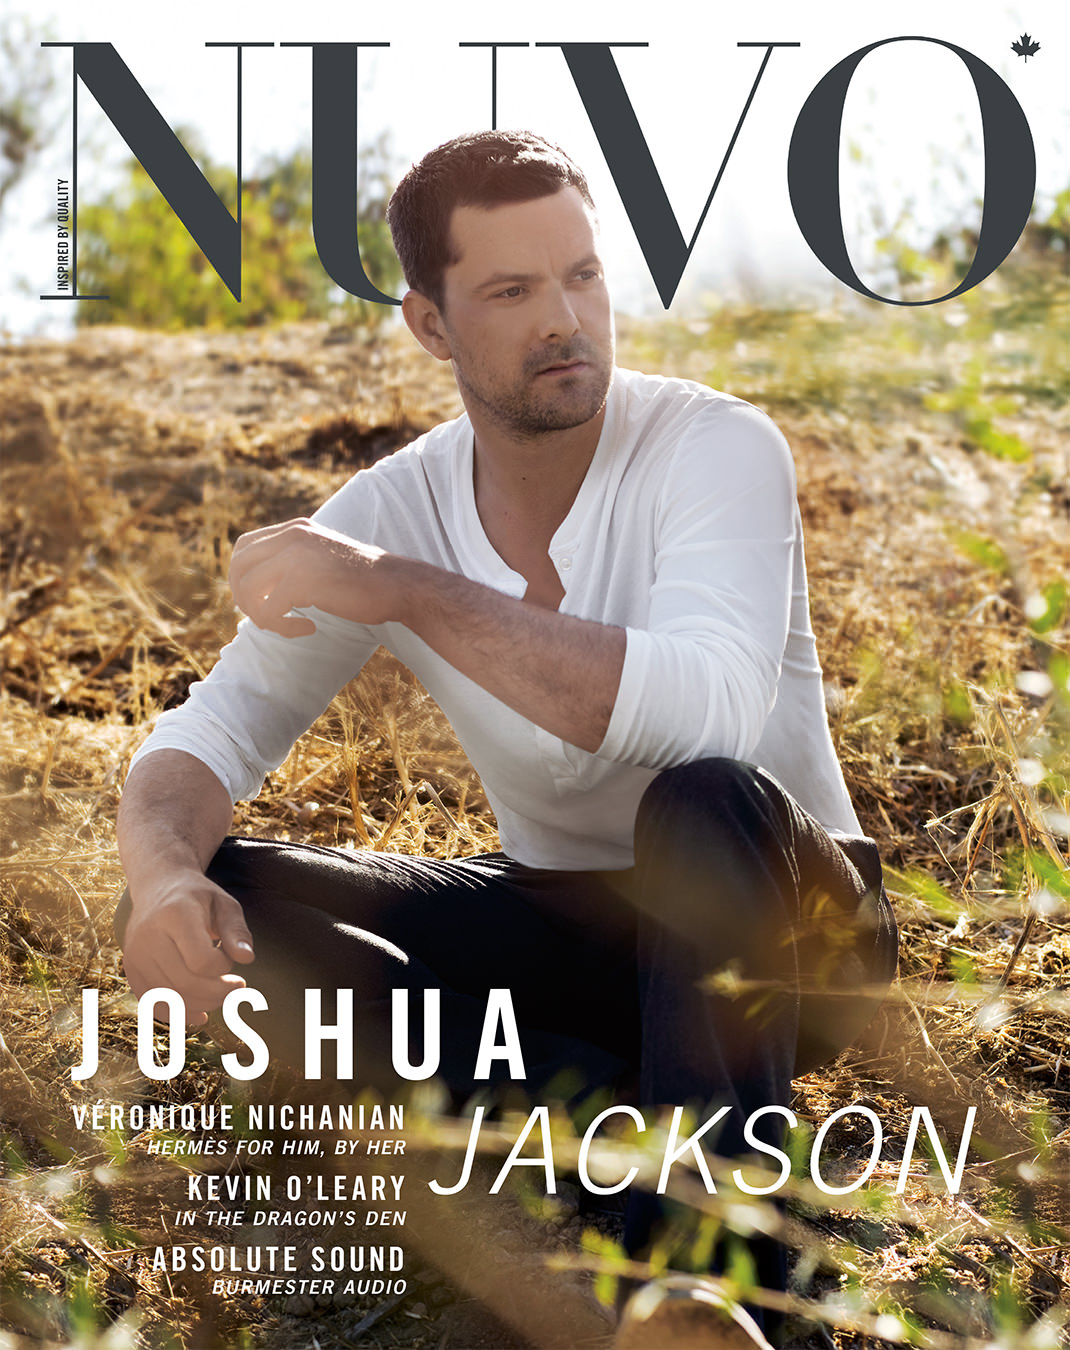 NUVO Magazine Autumn 2010 Cover featuring Joshua Jackson